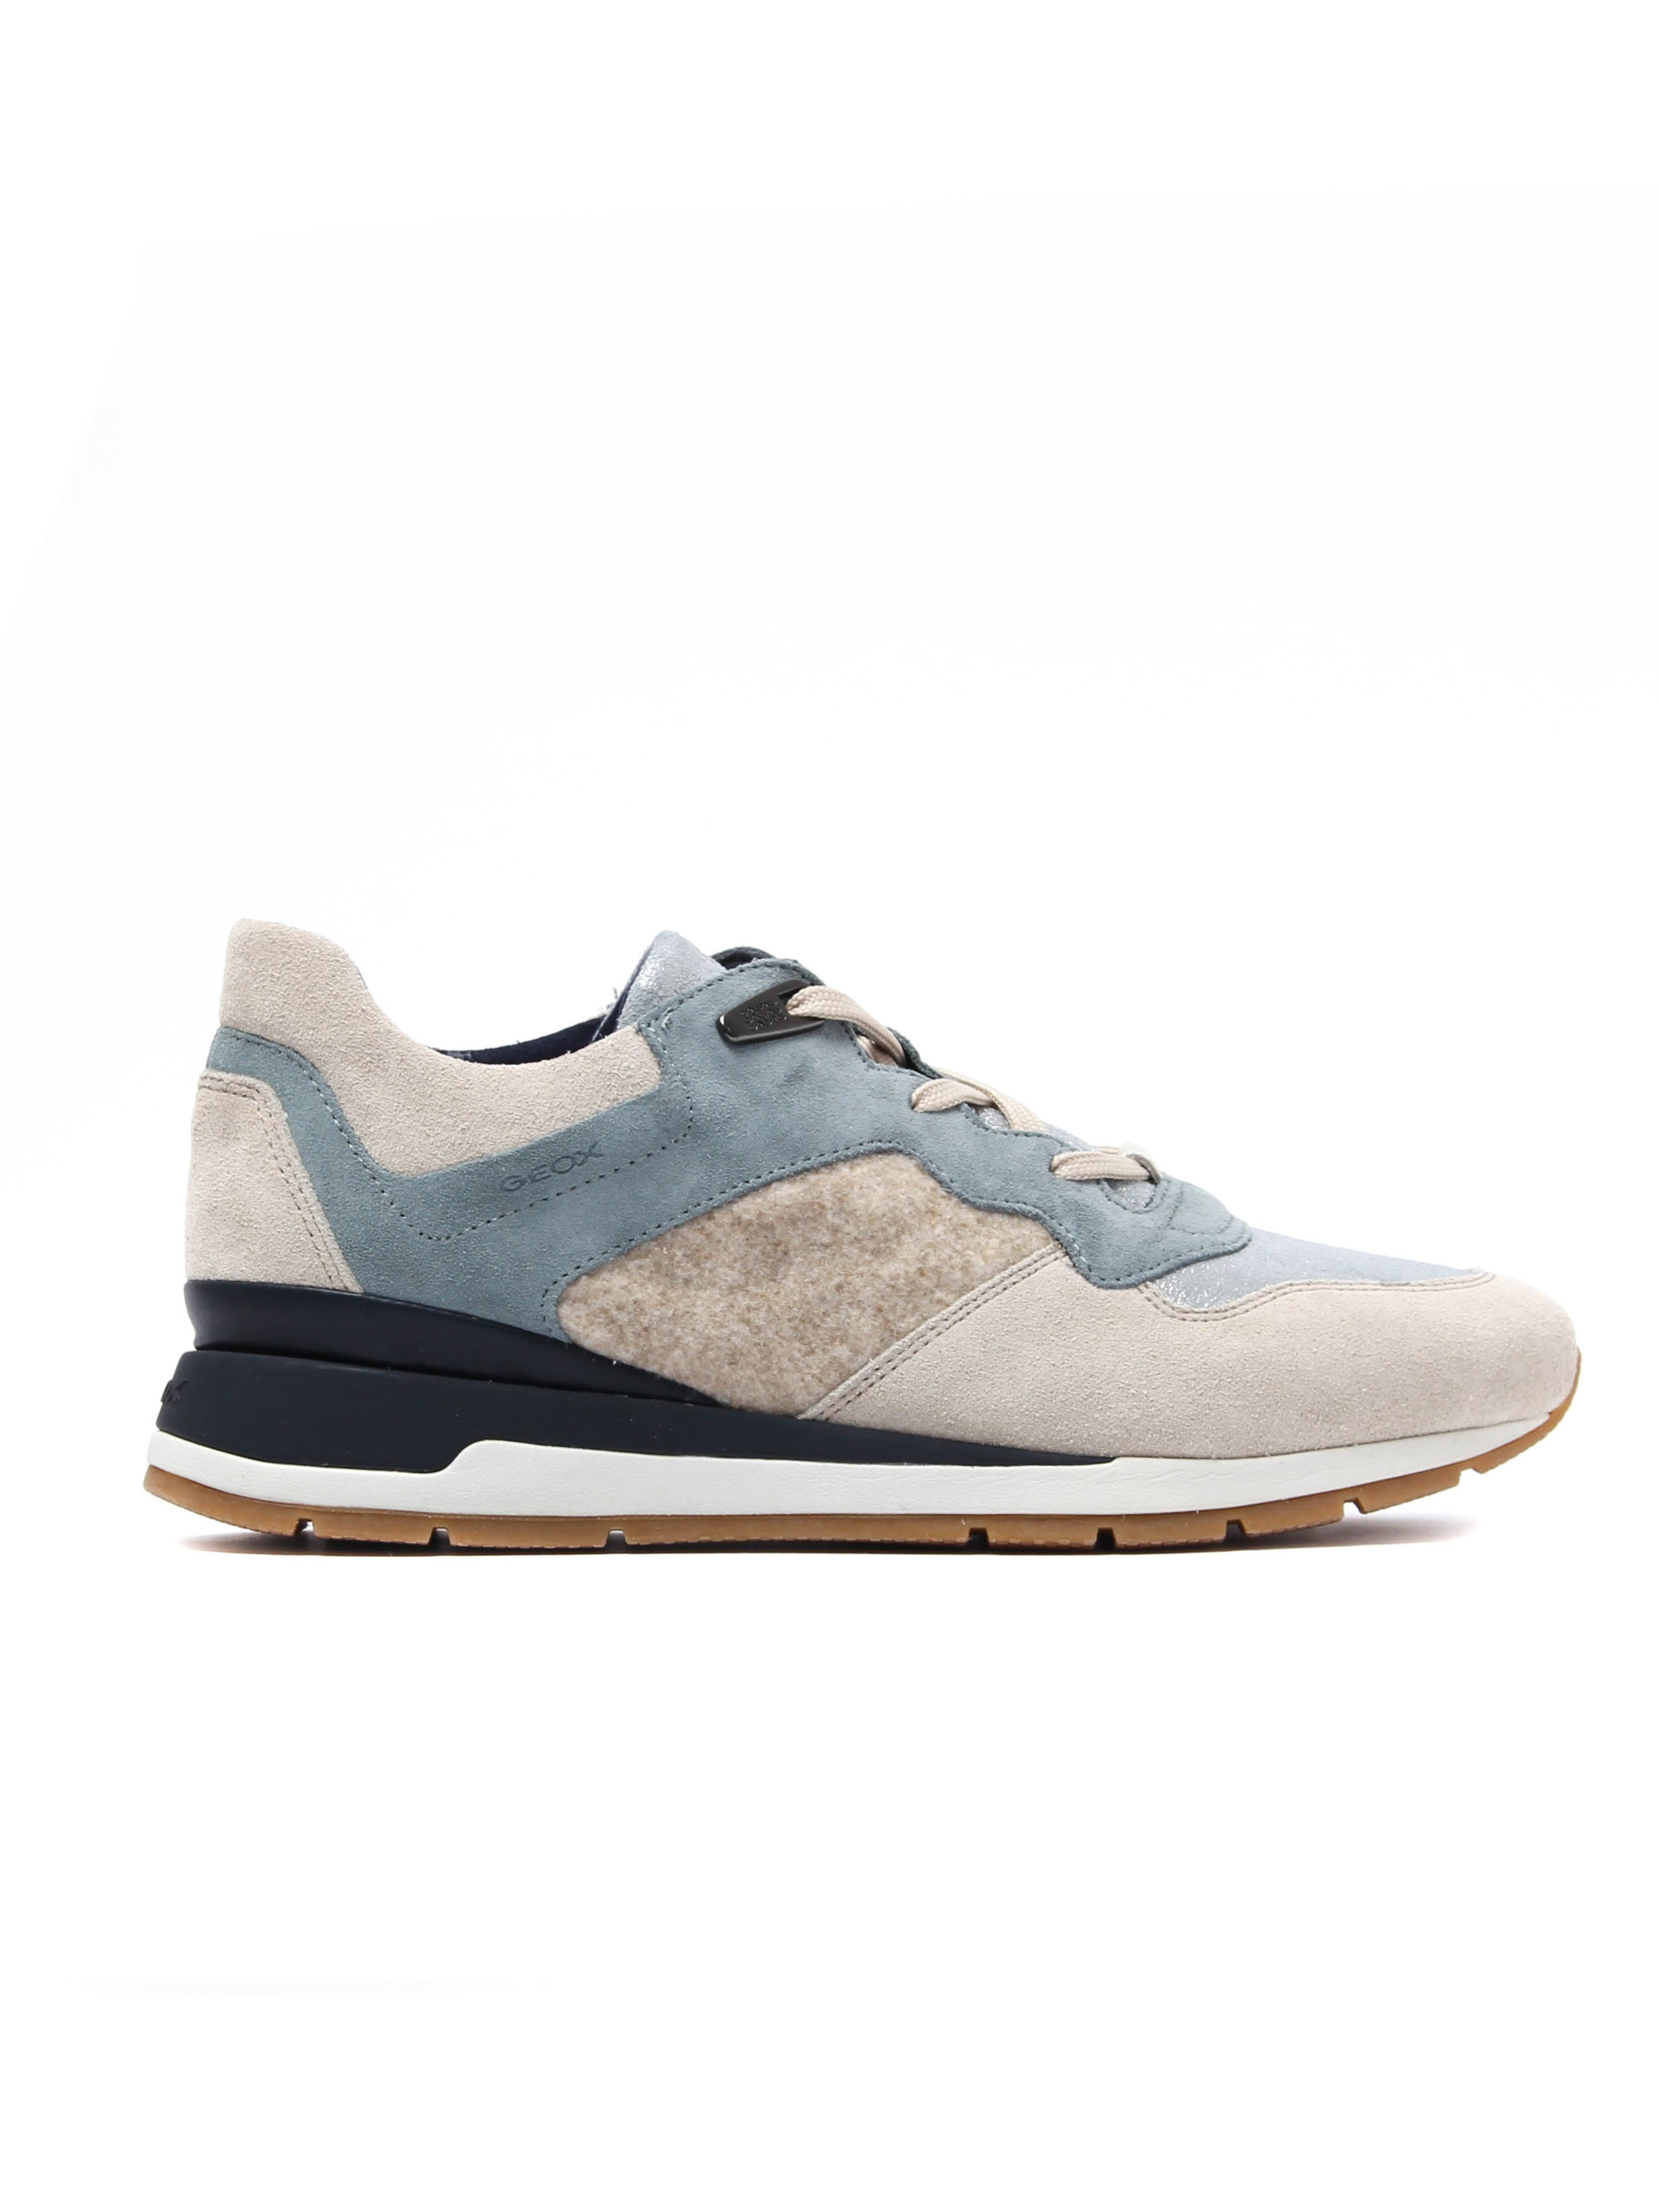 Geox Women's D Shahira Trainers - Sand Suede